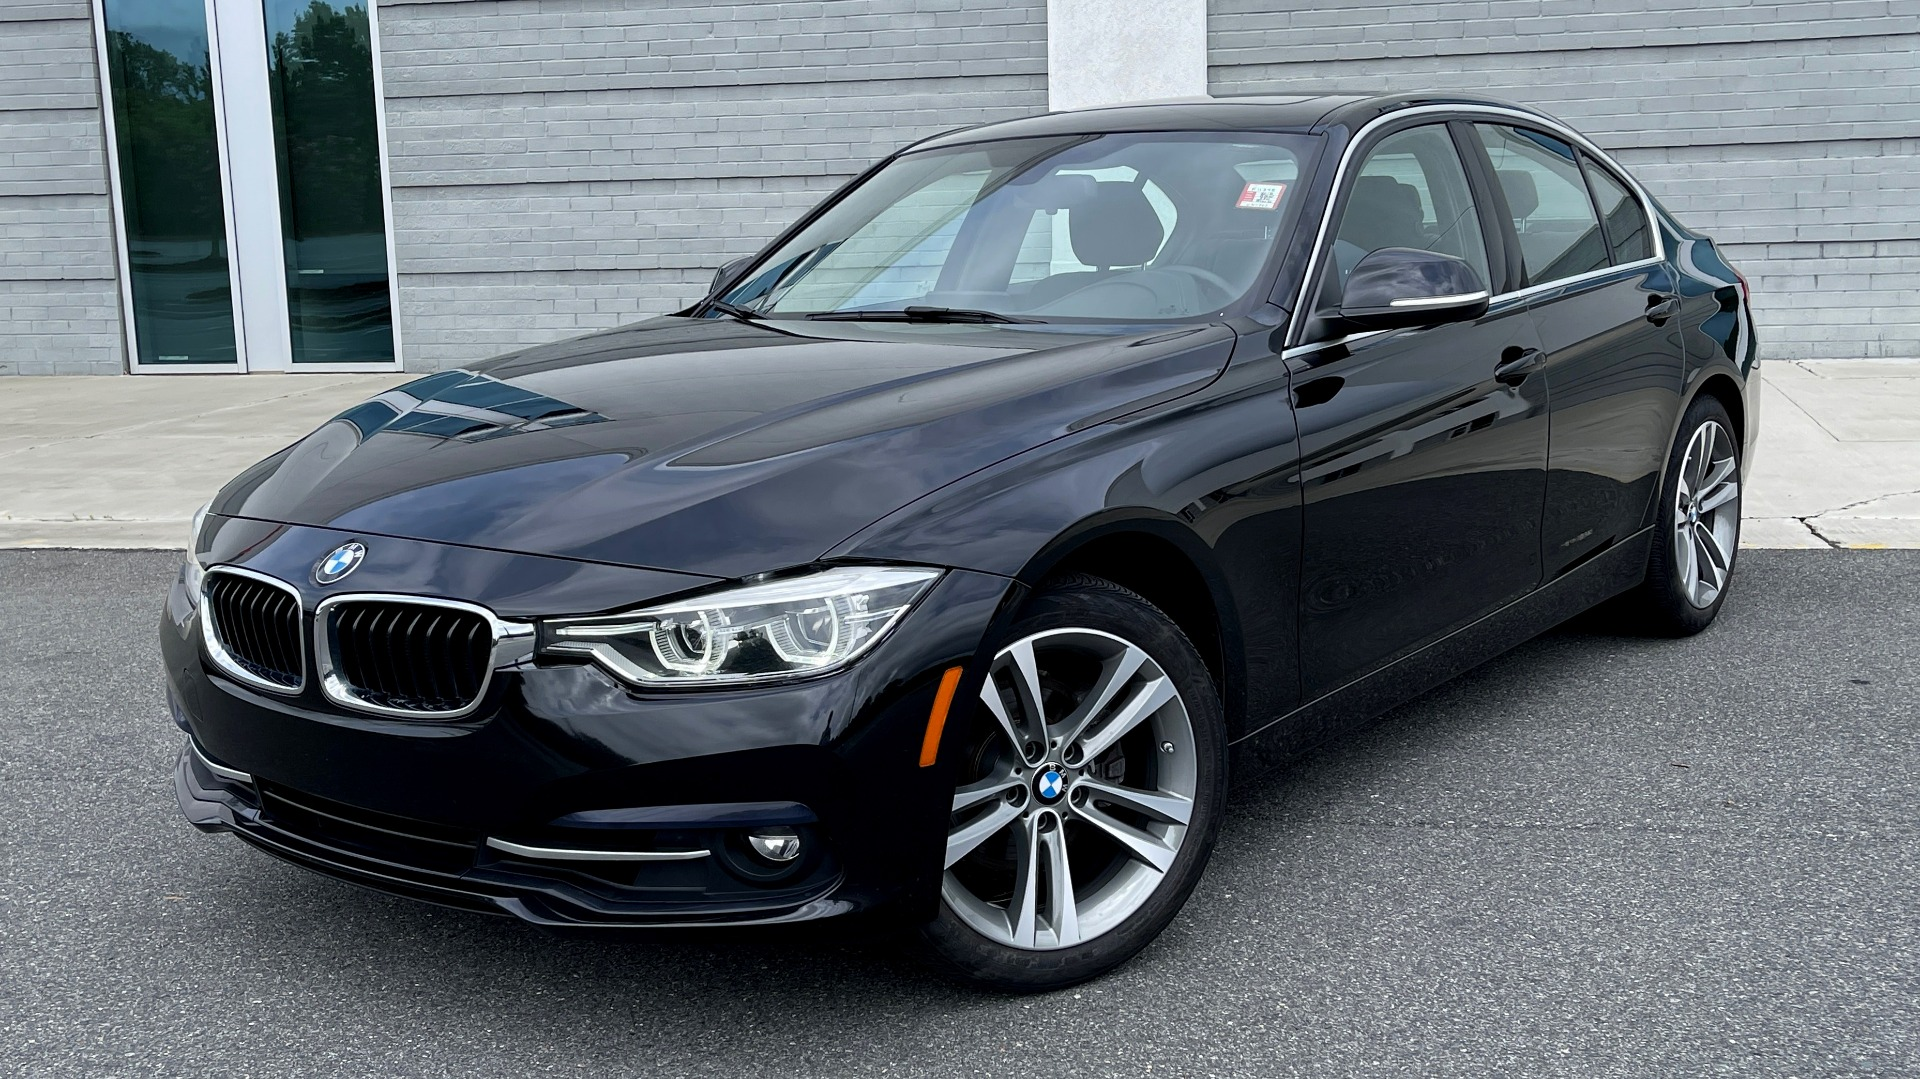 Used 2018 BMW 3 SERIES 330IXDRIVE / NAV / CONV PKG / ABSD / SUNROOF / REARVIEW for sale $29,599 at Formula Imports in Charlotte NC 28227 1